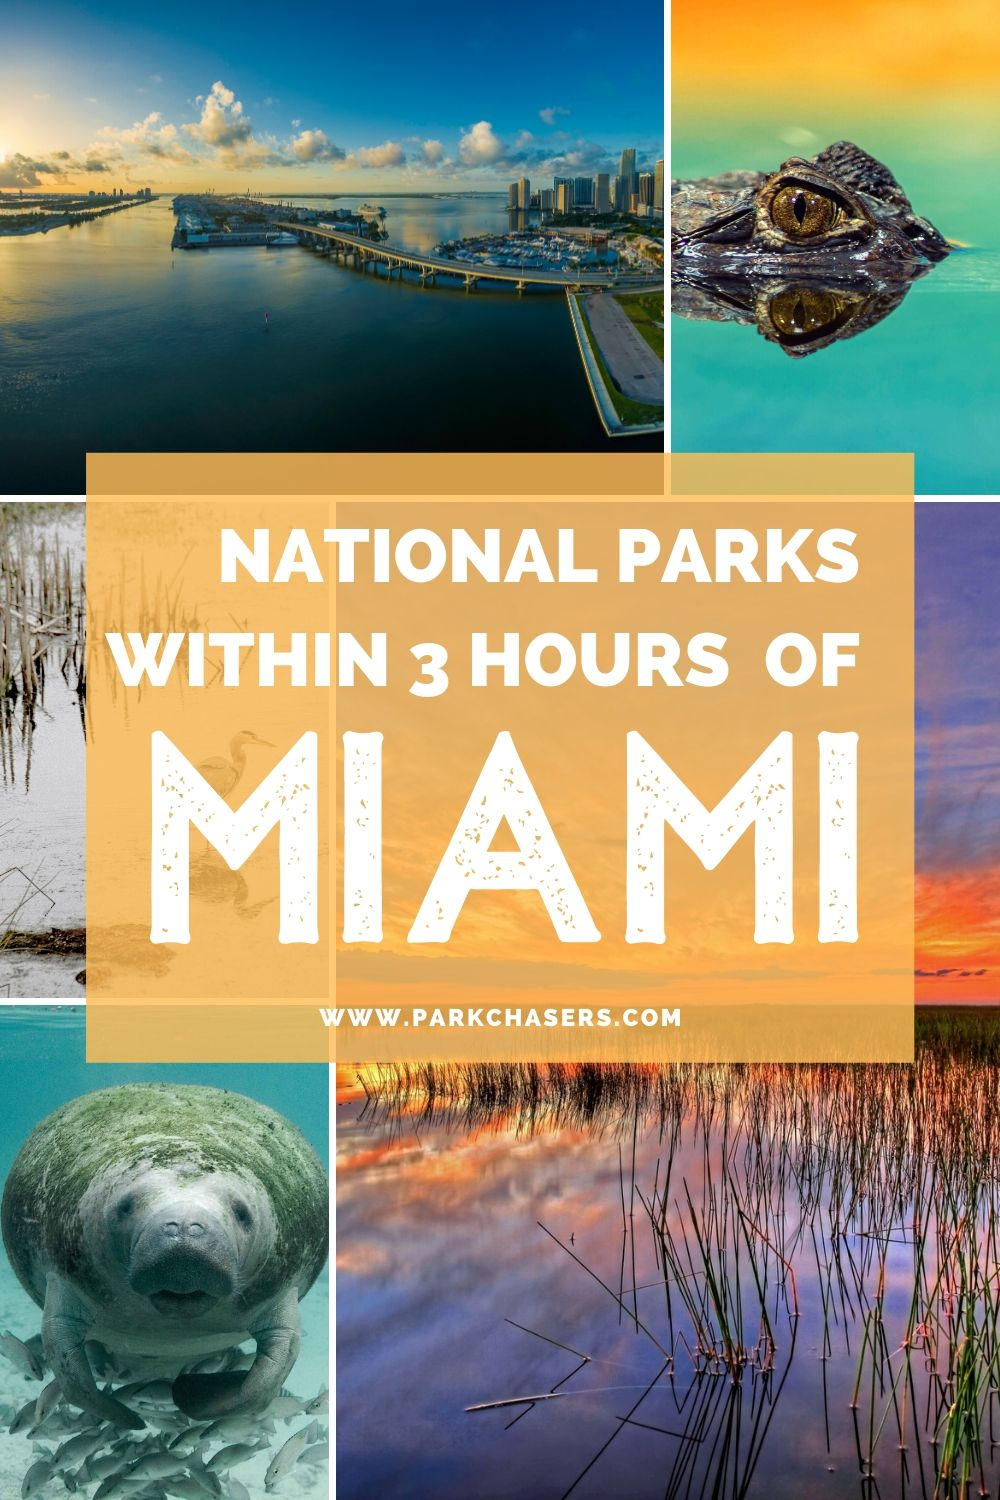 National Parks Within 3 hours of Miami